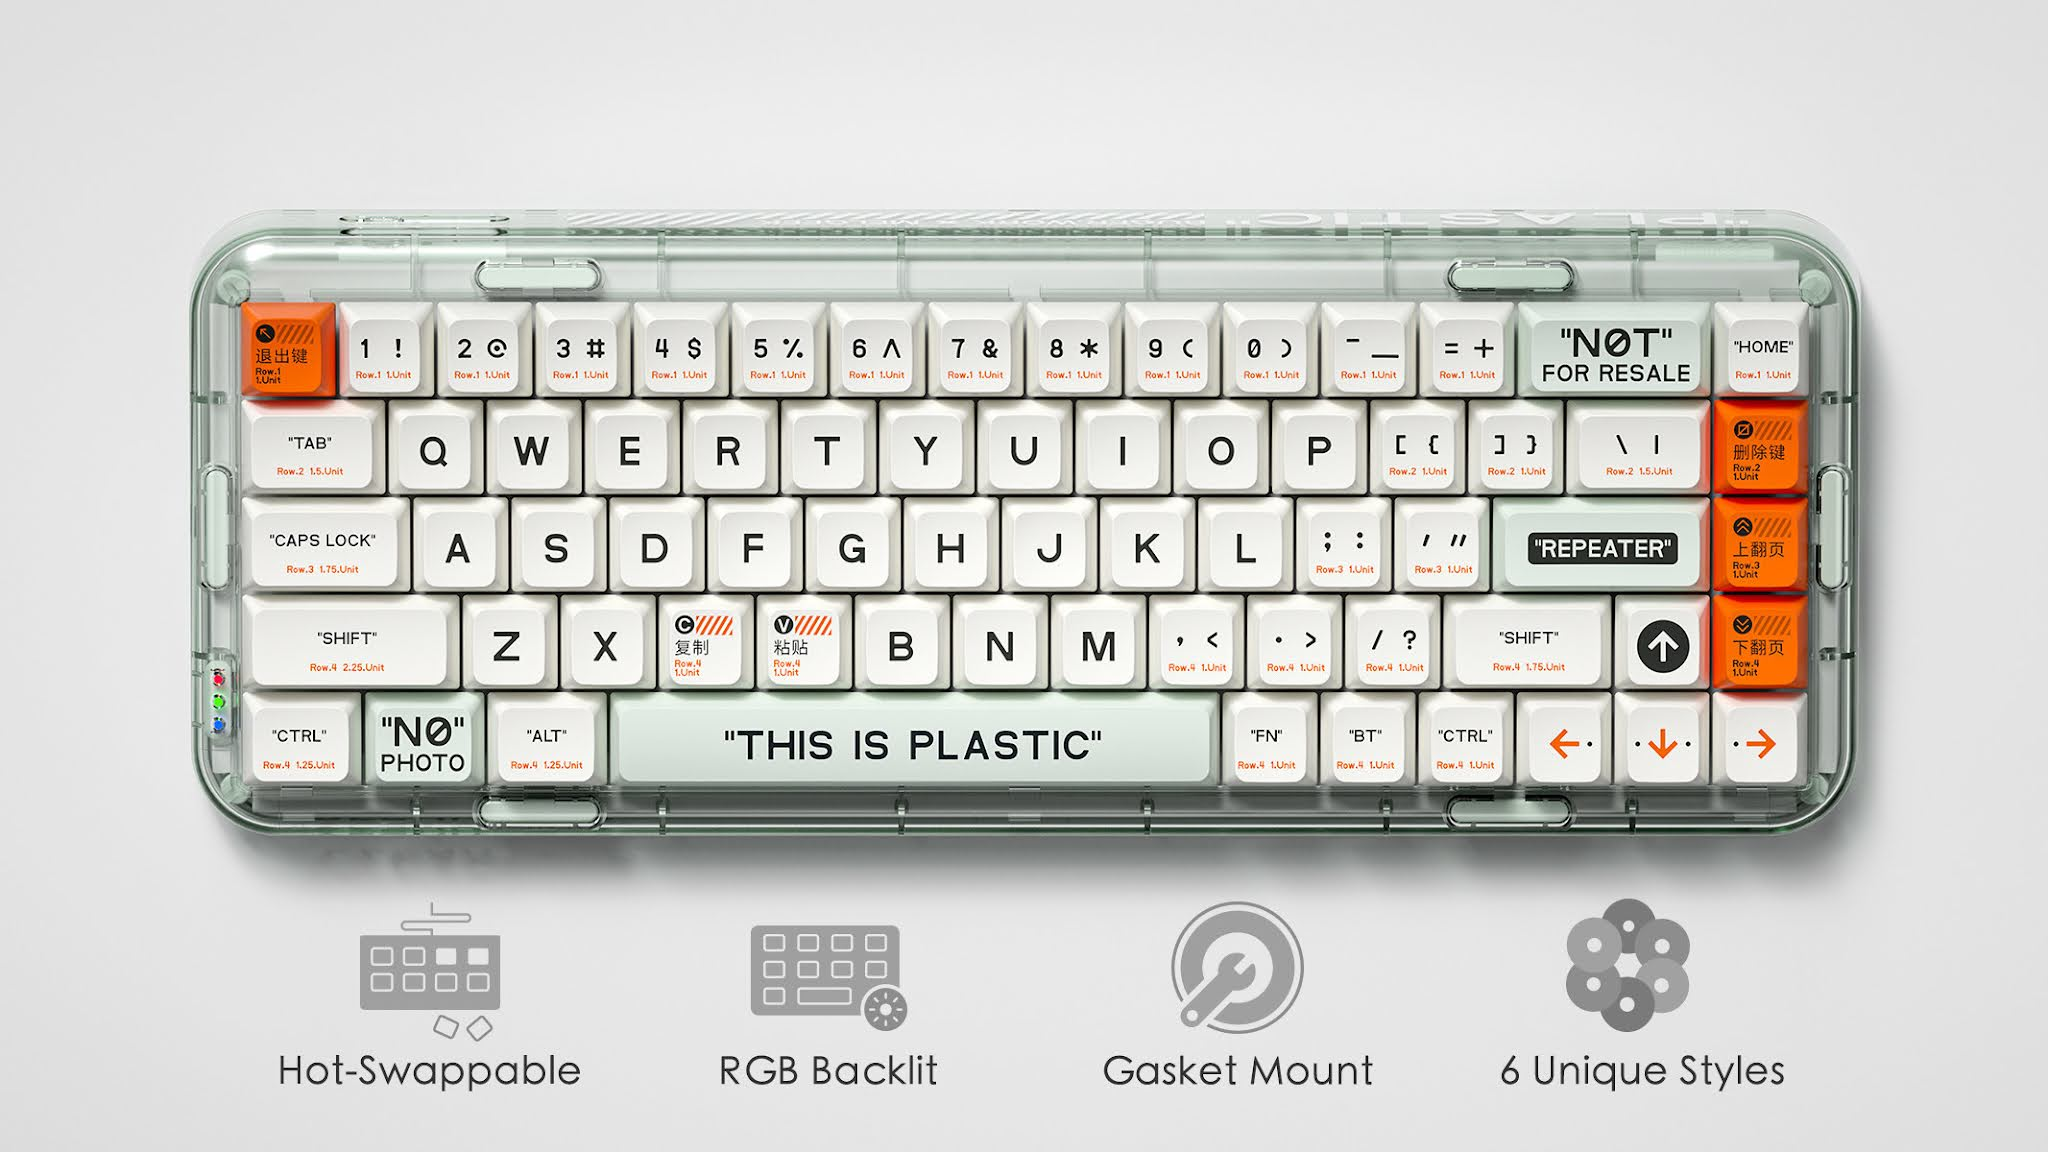 MelGeek Announces Launch of Mojo68 -- A See-Through, Customizable & Programmable Mechanical Keyboard